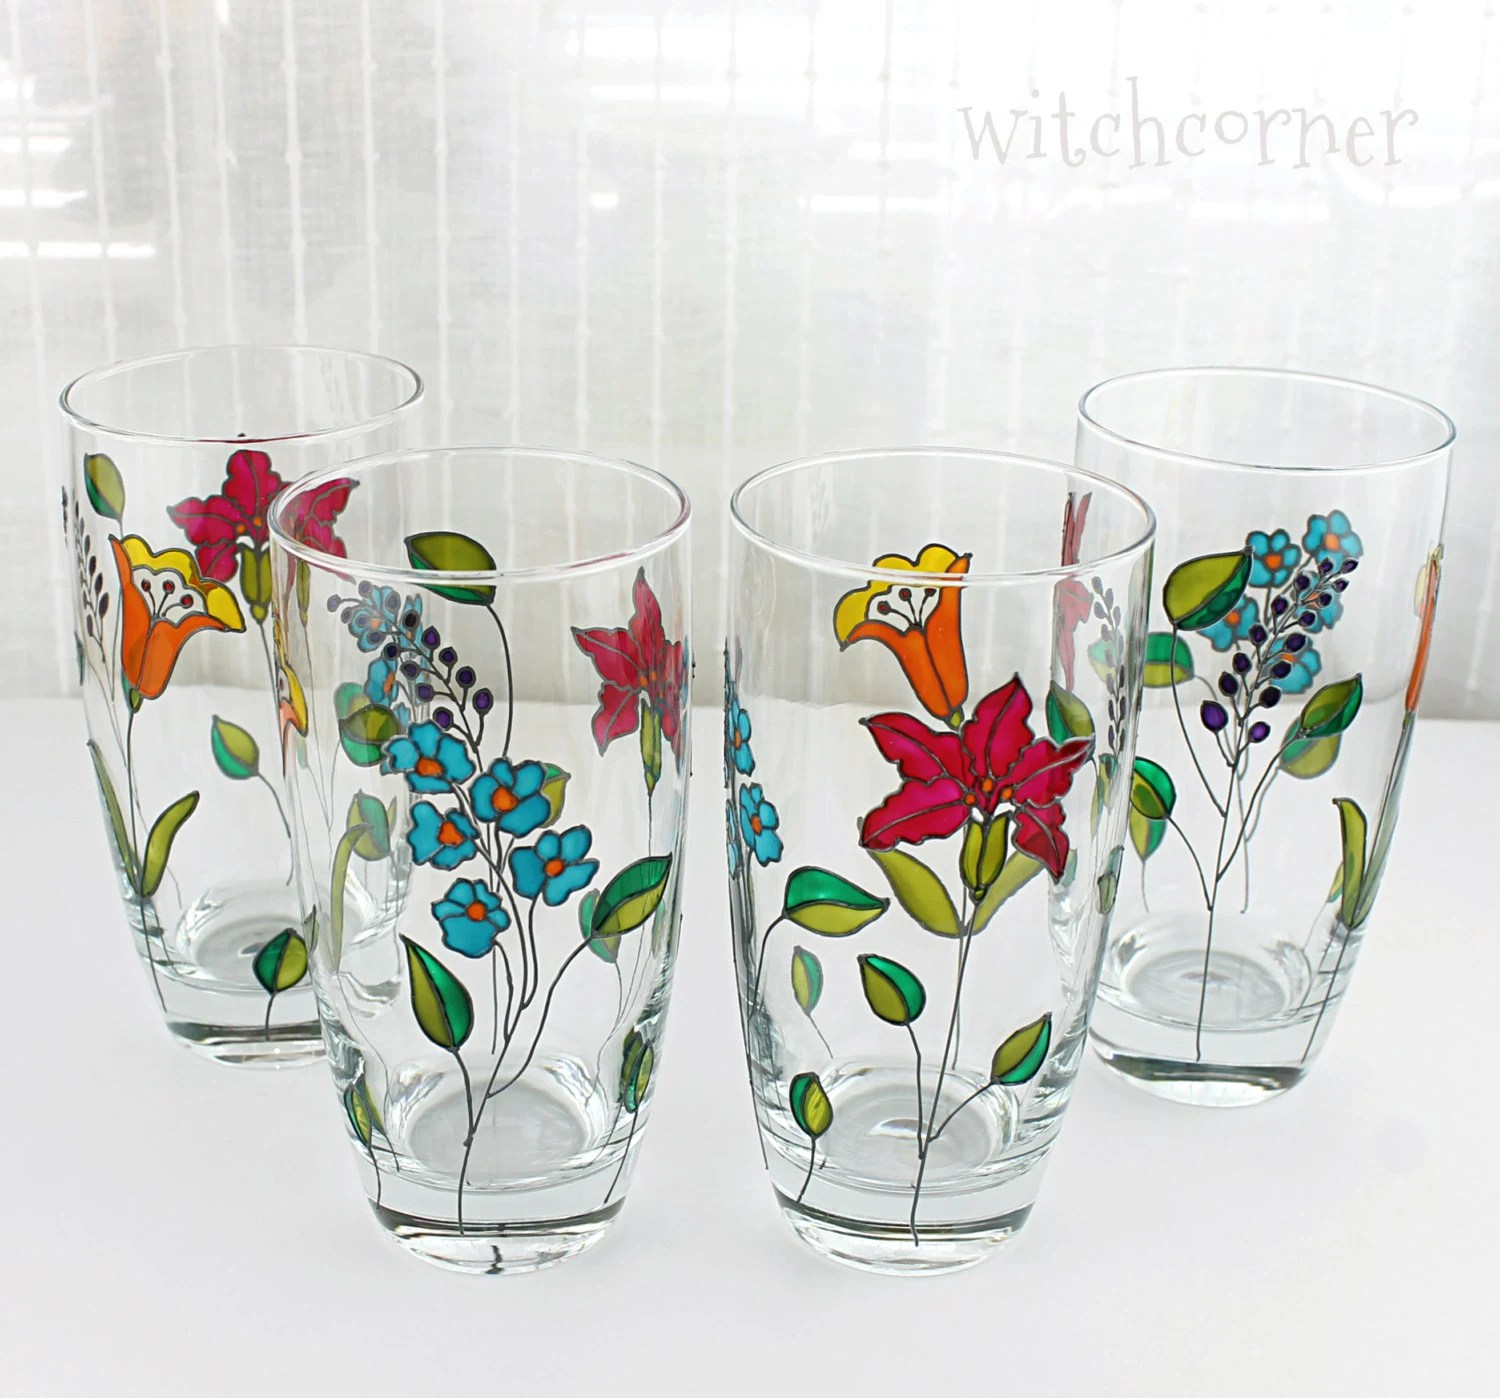 Drinking Glasses Designs Hand Painted Glasses Tumblers Water Glasses Glasses With